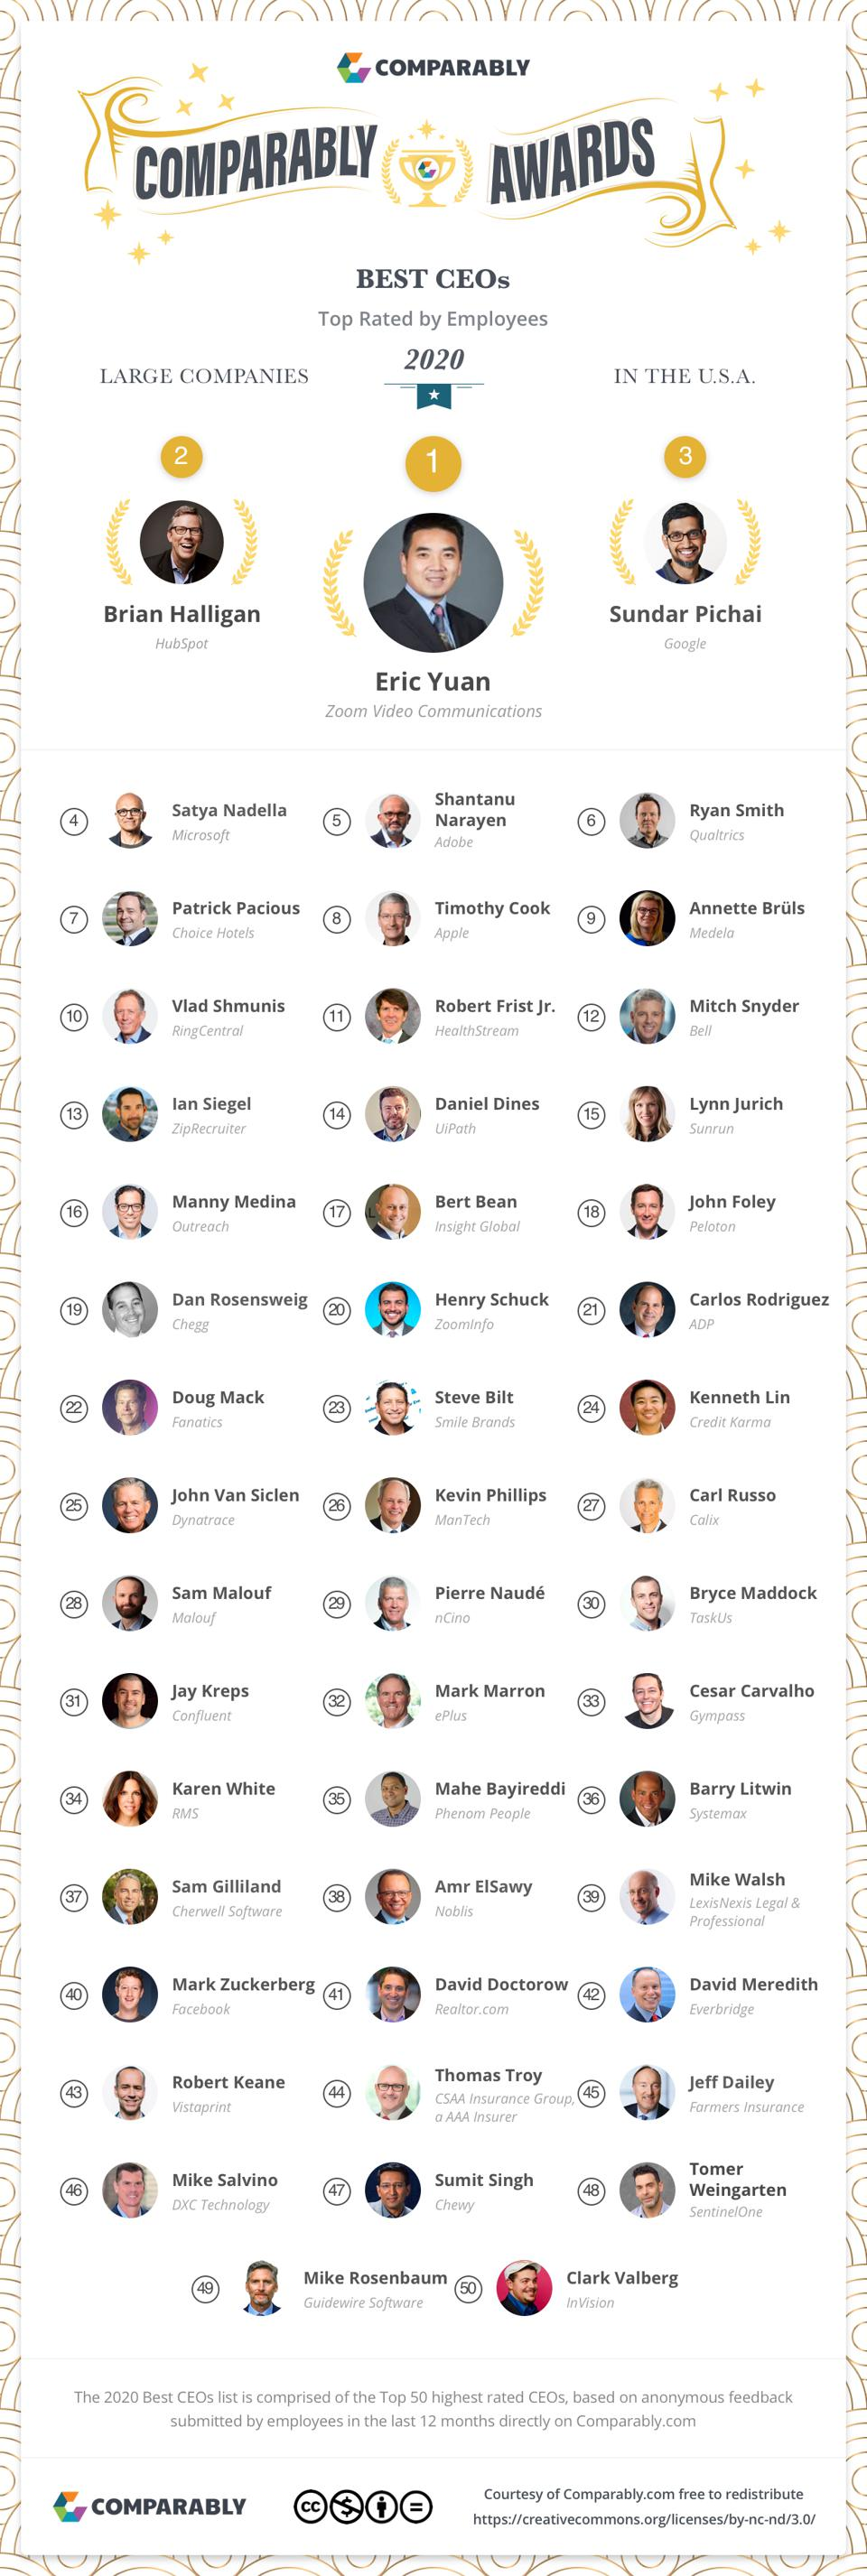 Listing of the top-rated CEOs for large companies